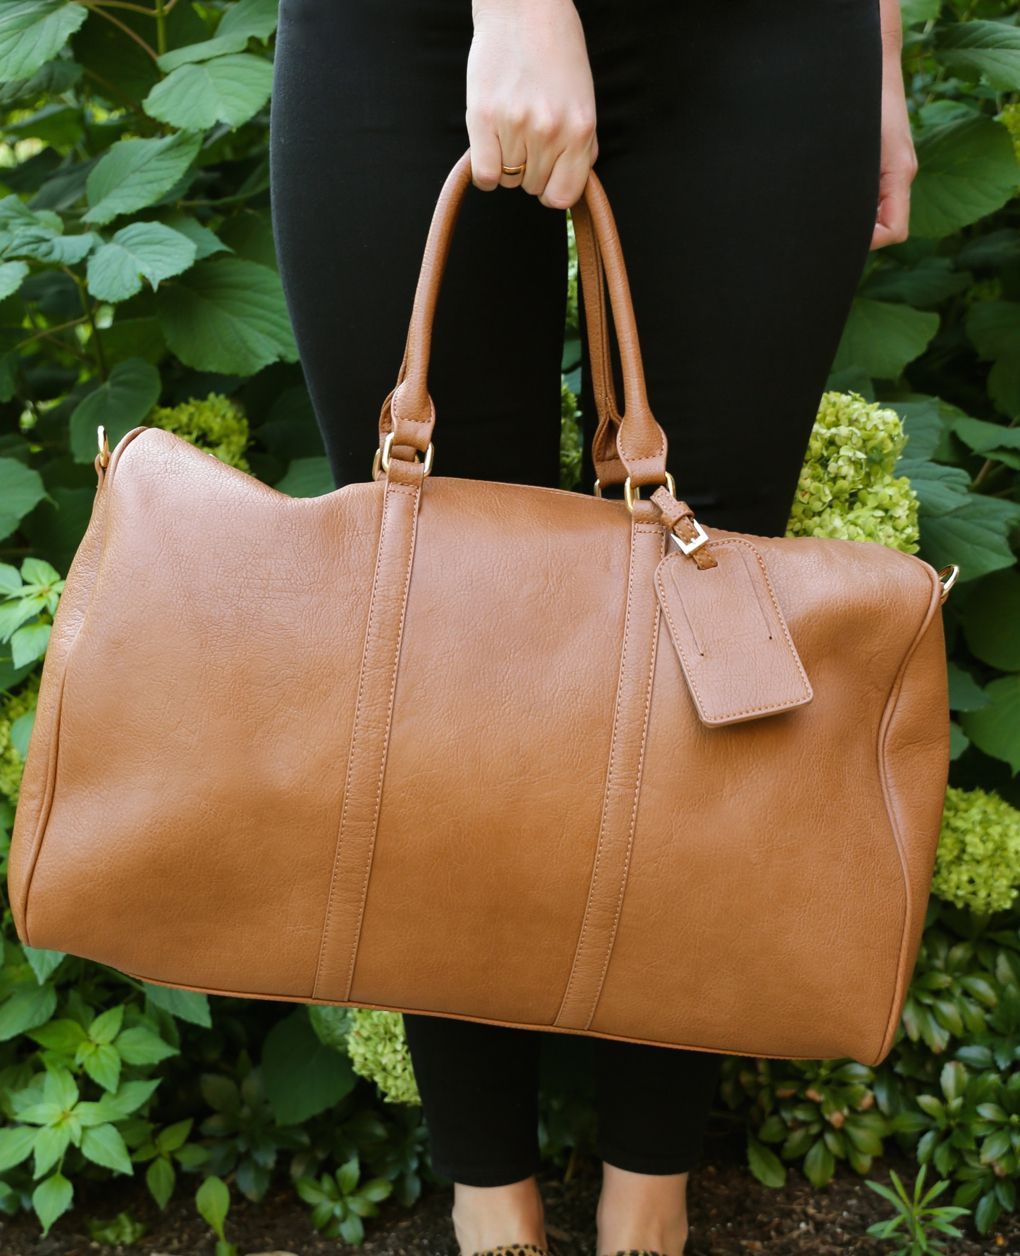 cbb40fed15 The Lacie weekender bag by Sole Society holds everything you need for fall  travels.